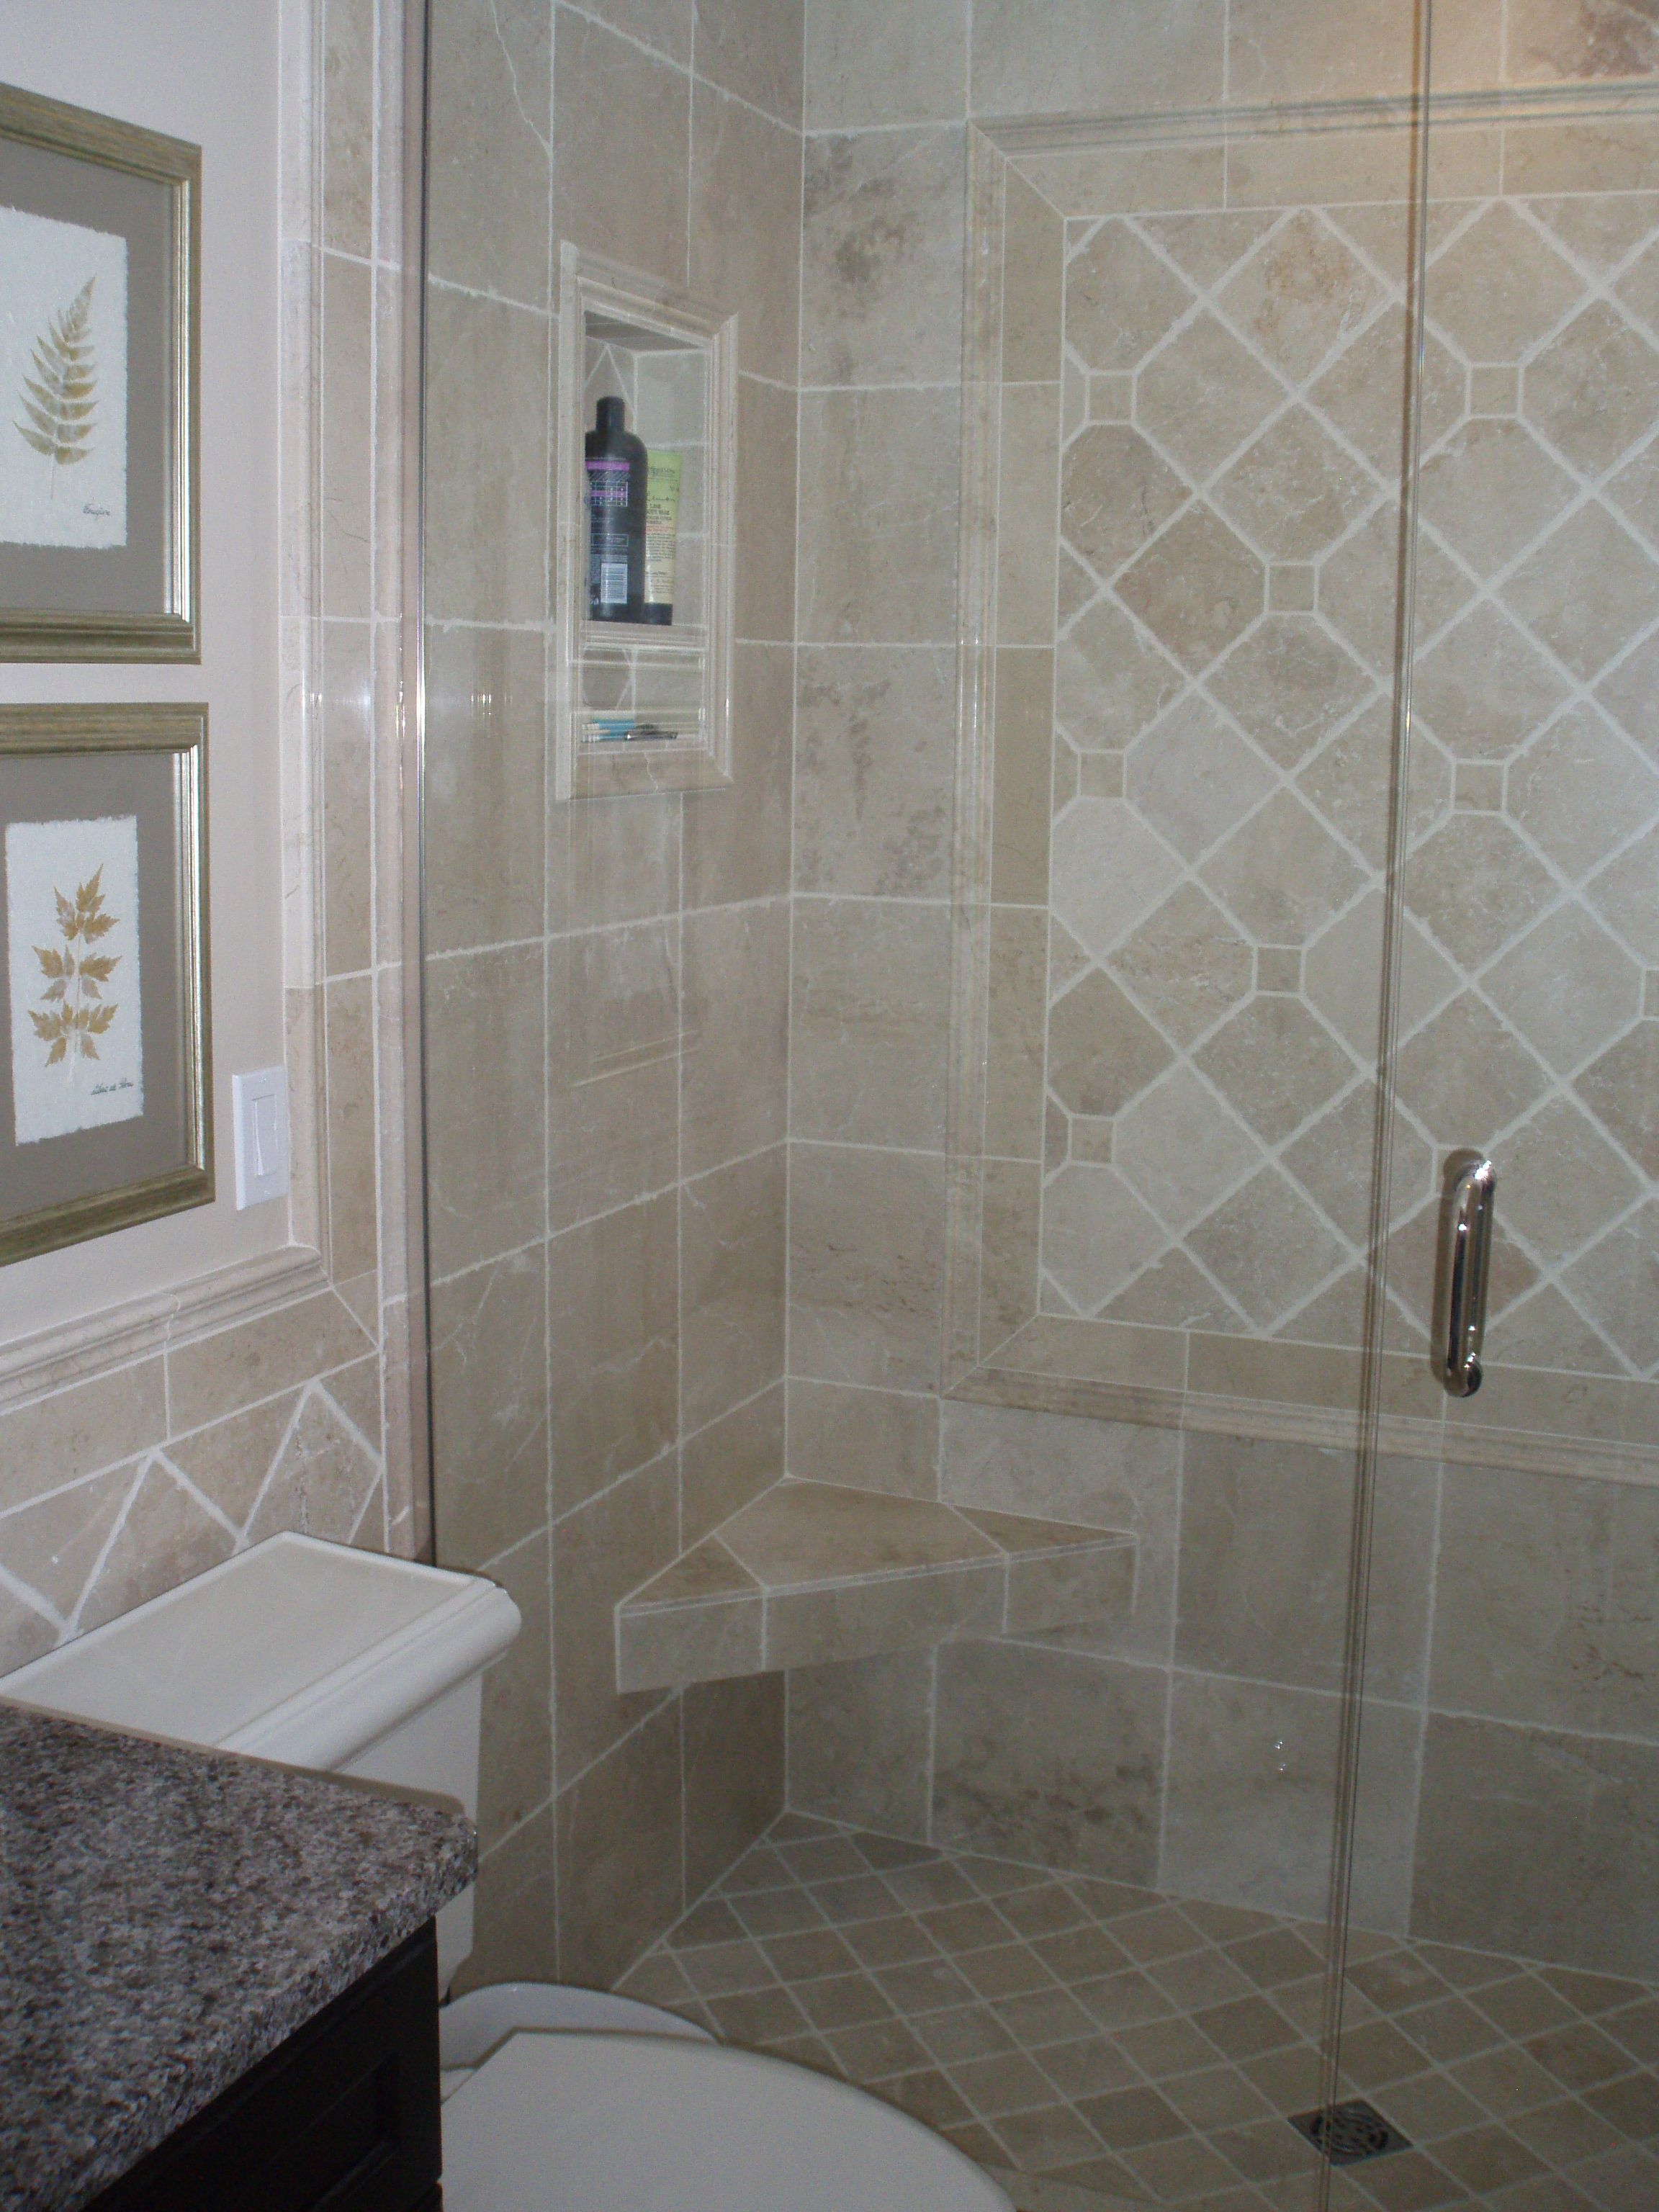 Bathroom done by hj martin and son designer annette bathrooms